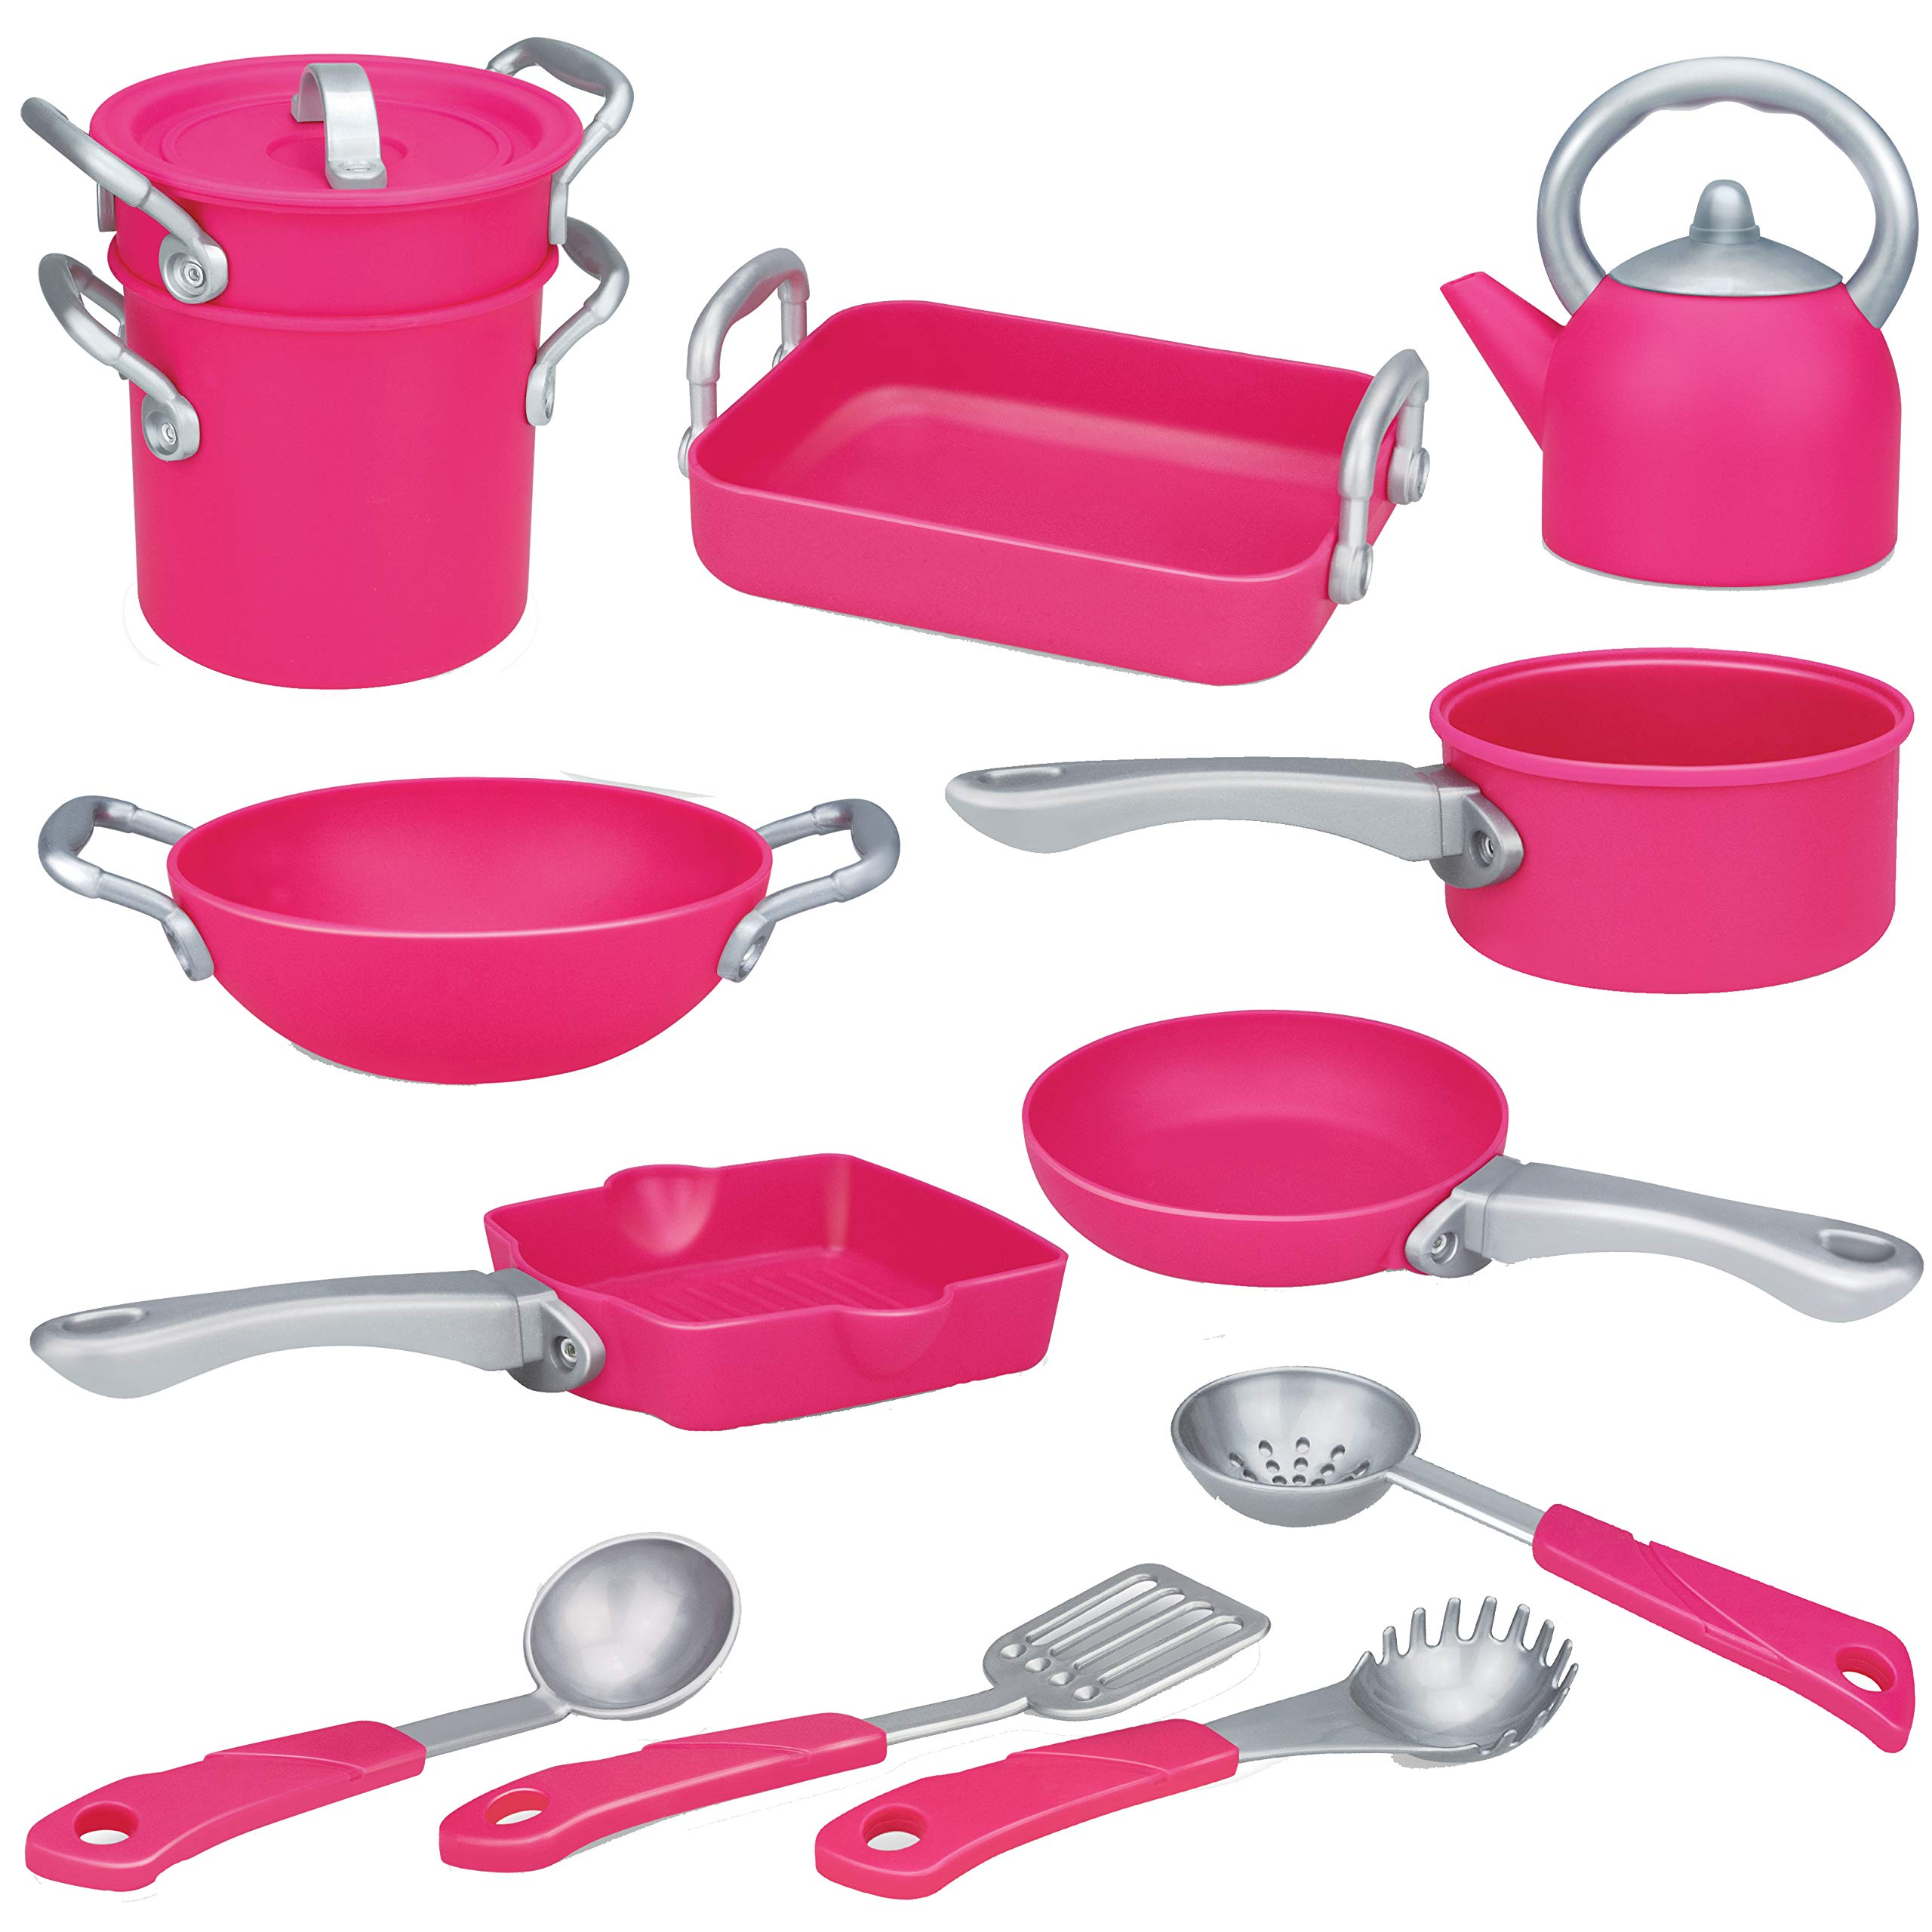 Liberty Imports Deluxe Pink Kitchen Gourmet Cookware Pots and Pans Playset for Girls (13 Pcs)